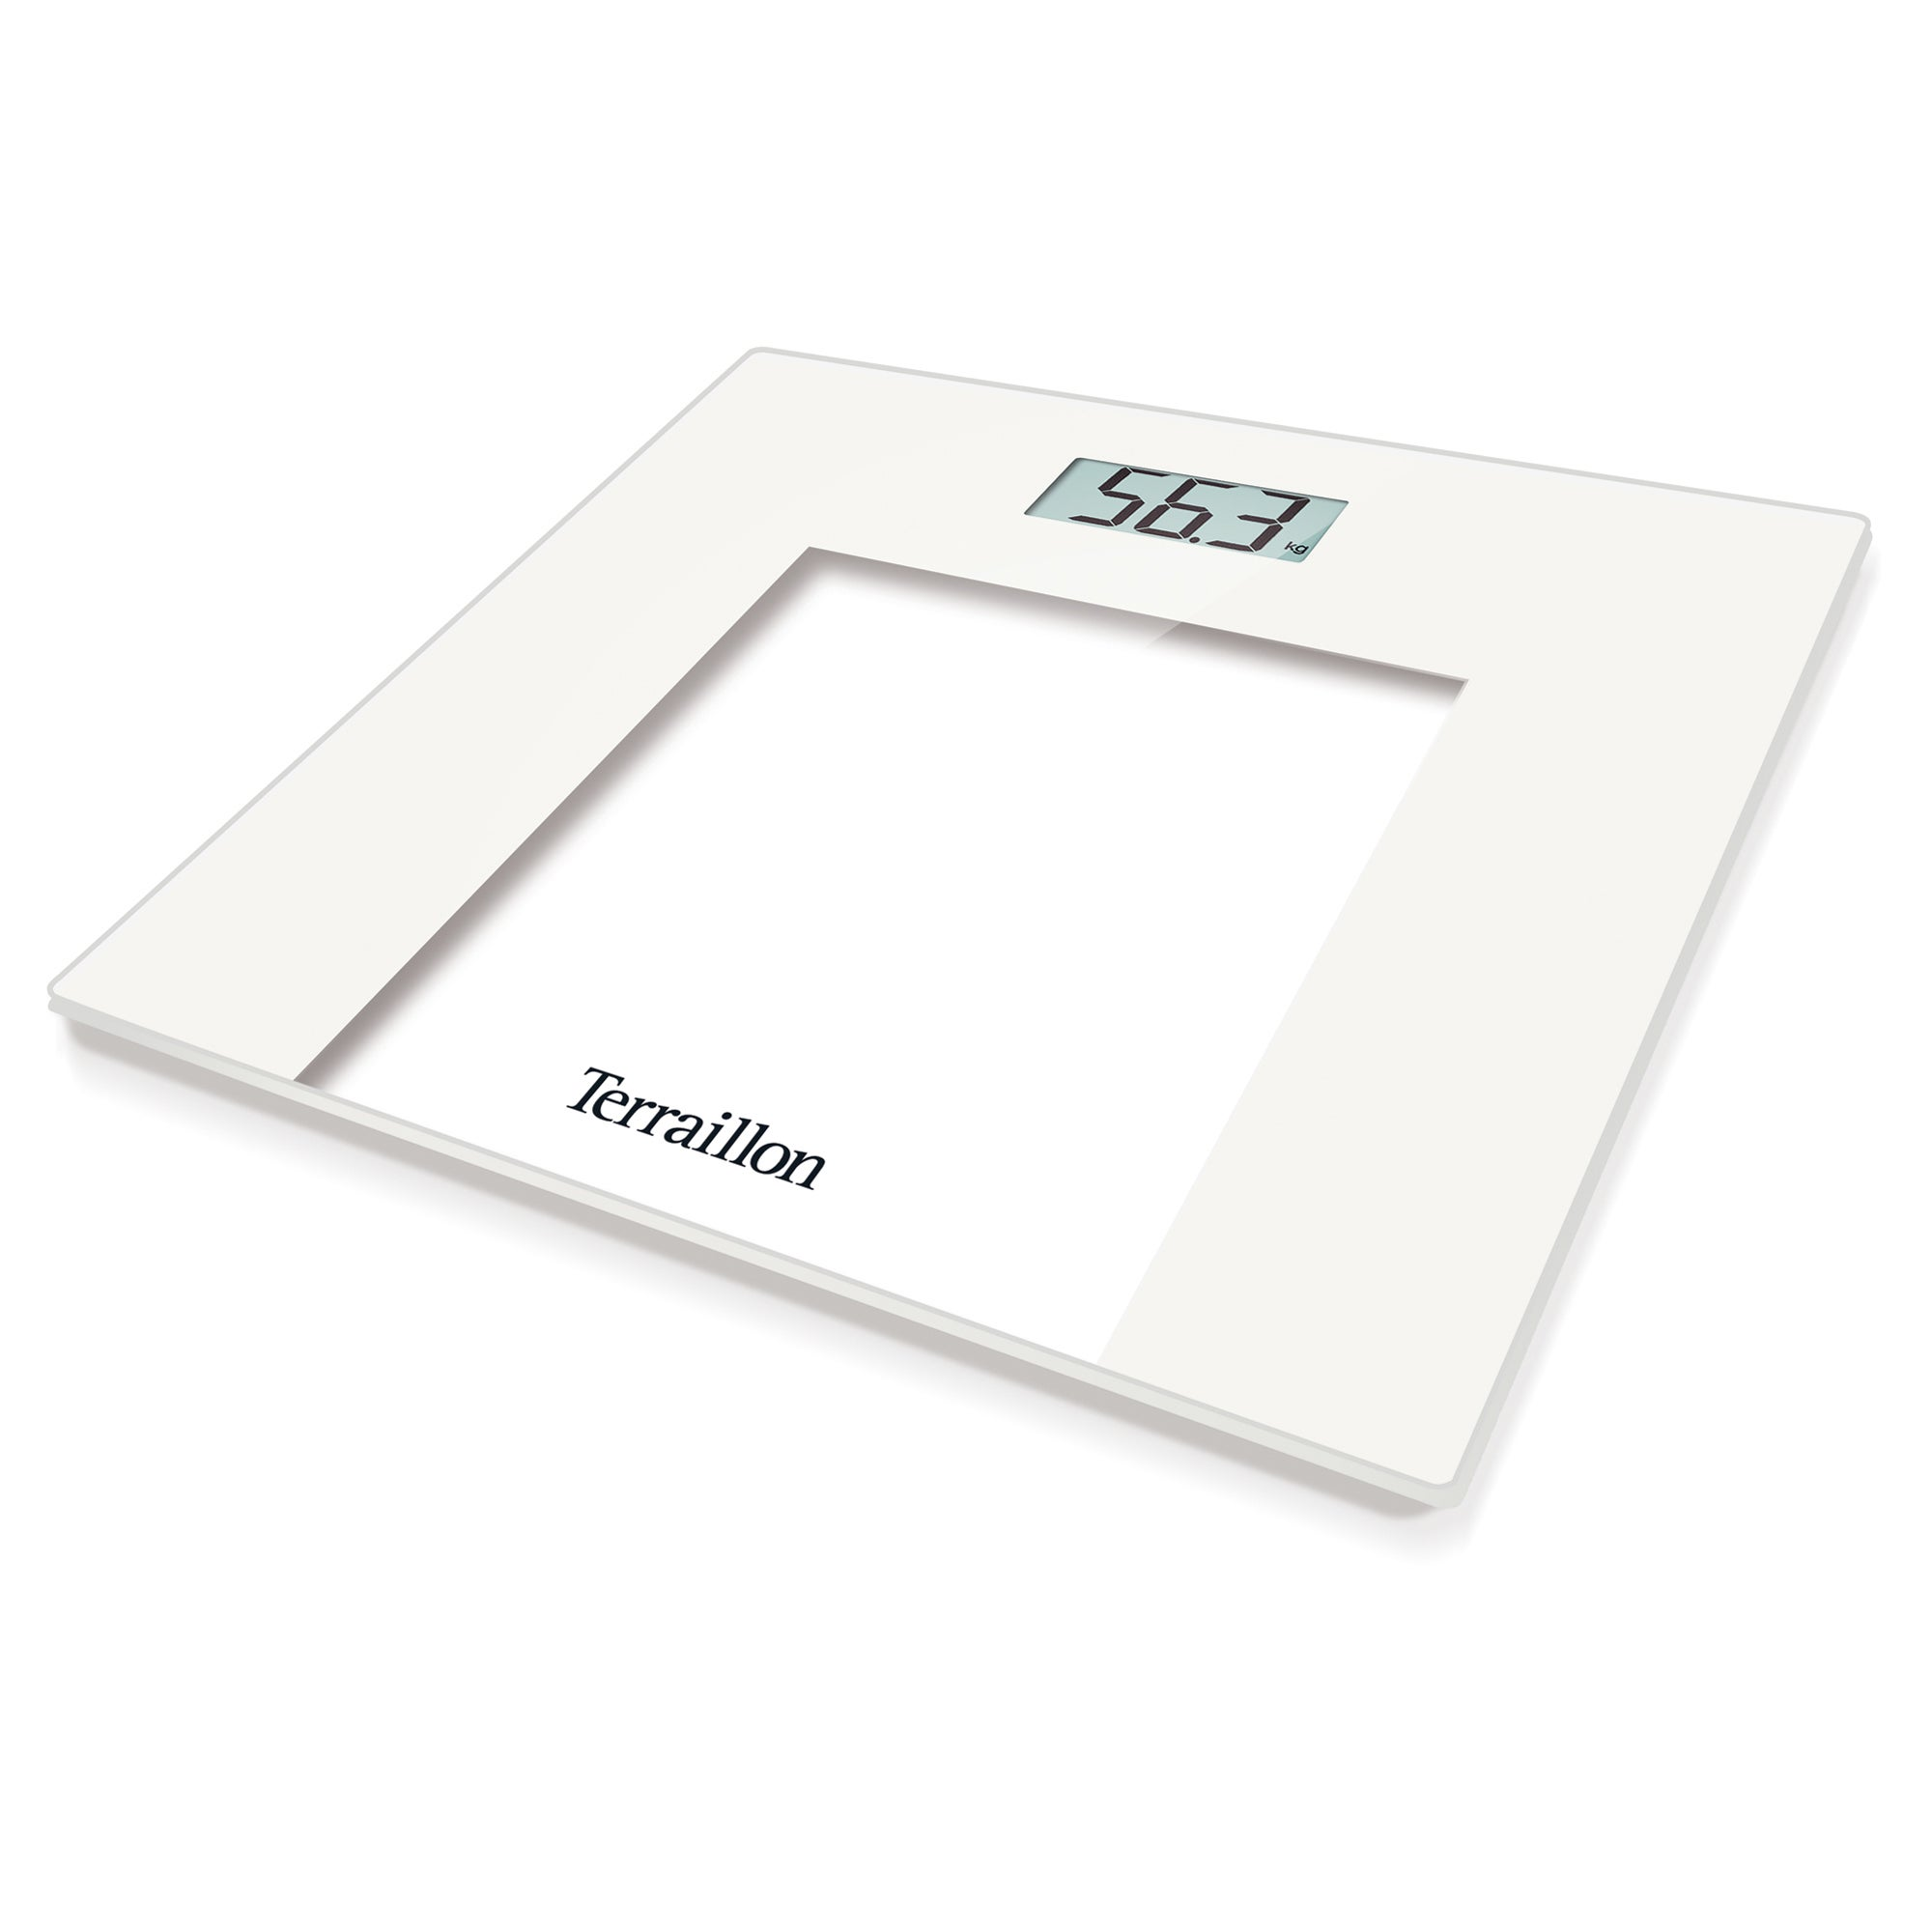 Image of Hanson HX6000 White Slim Glass Electronic Scales White